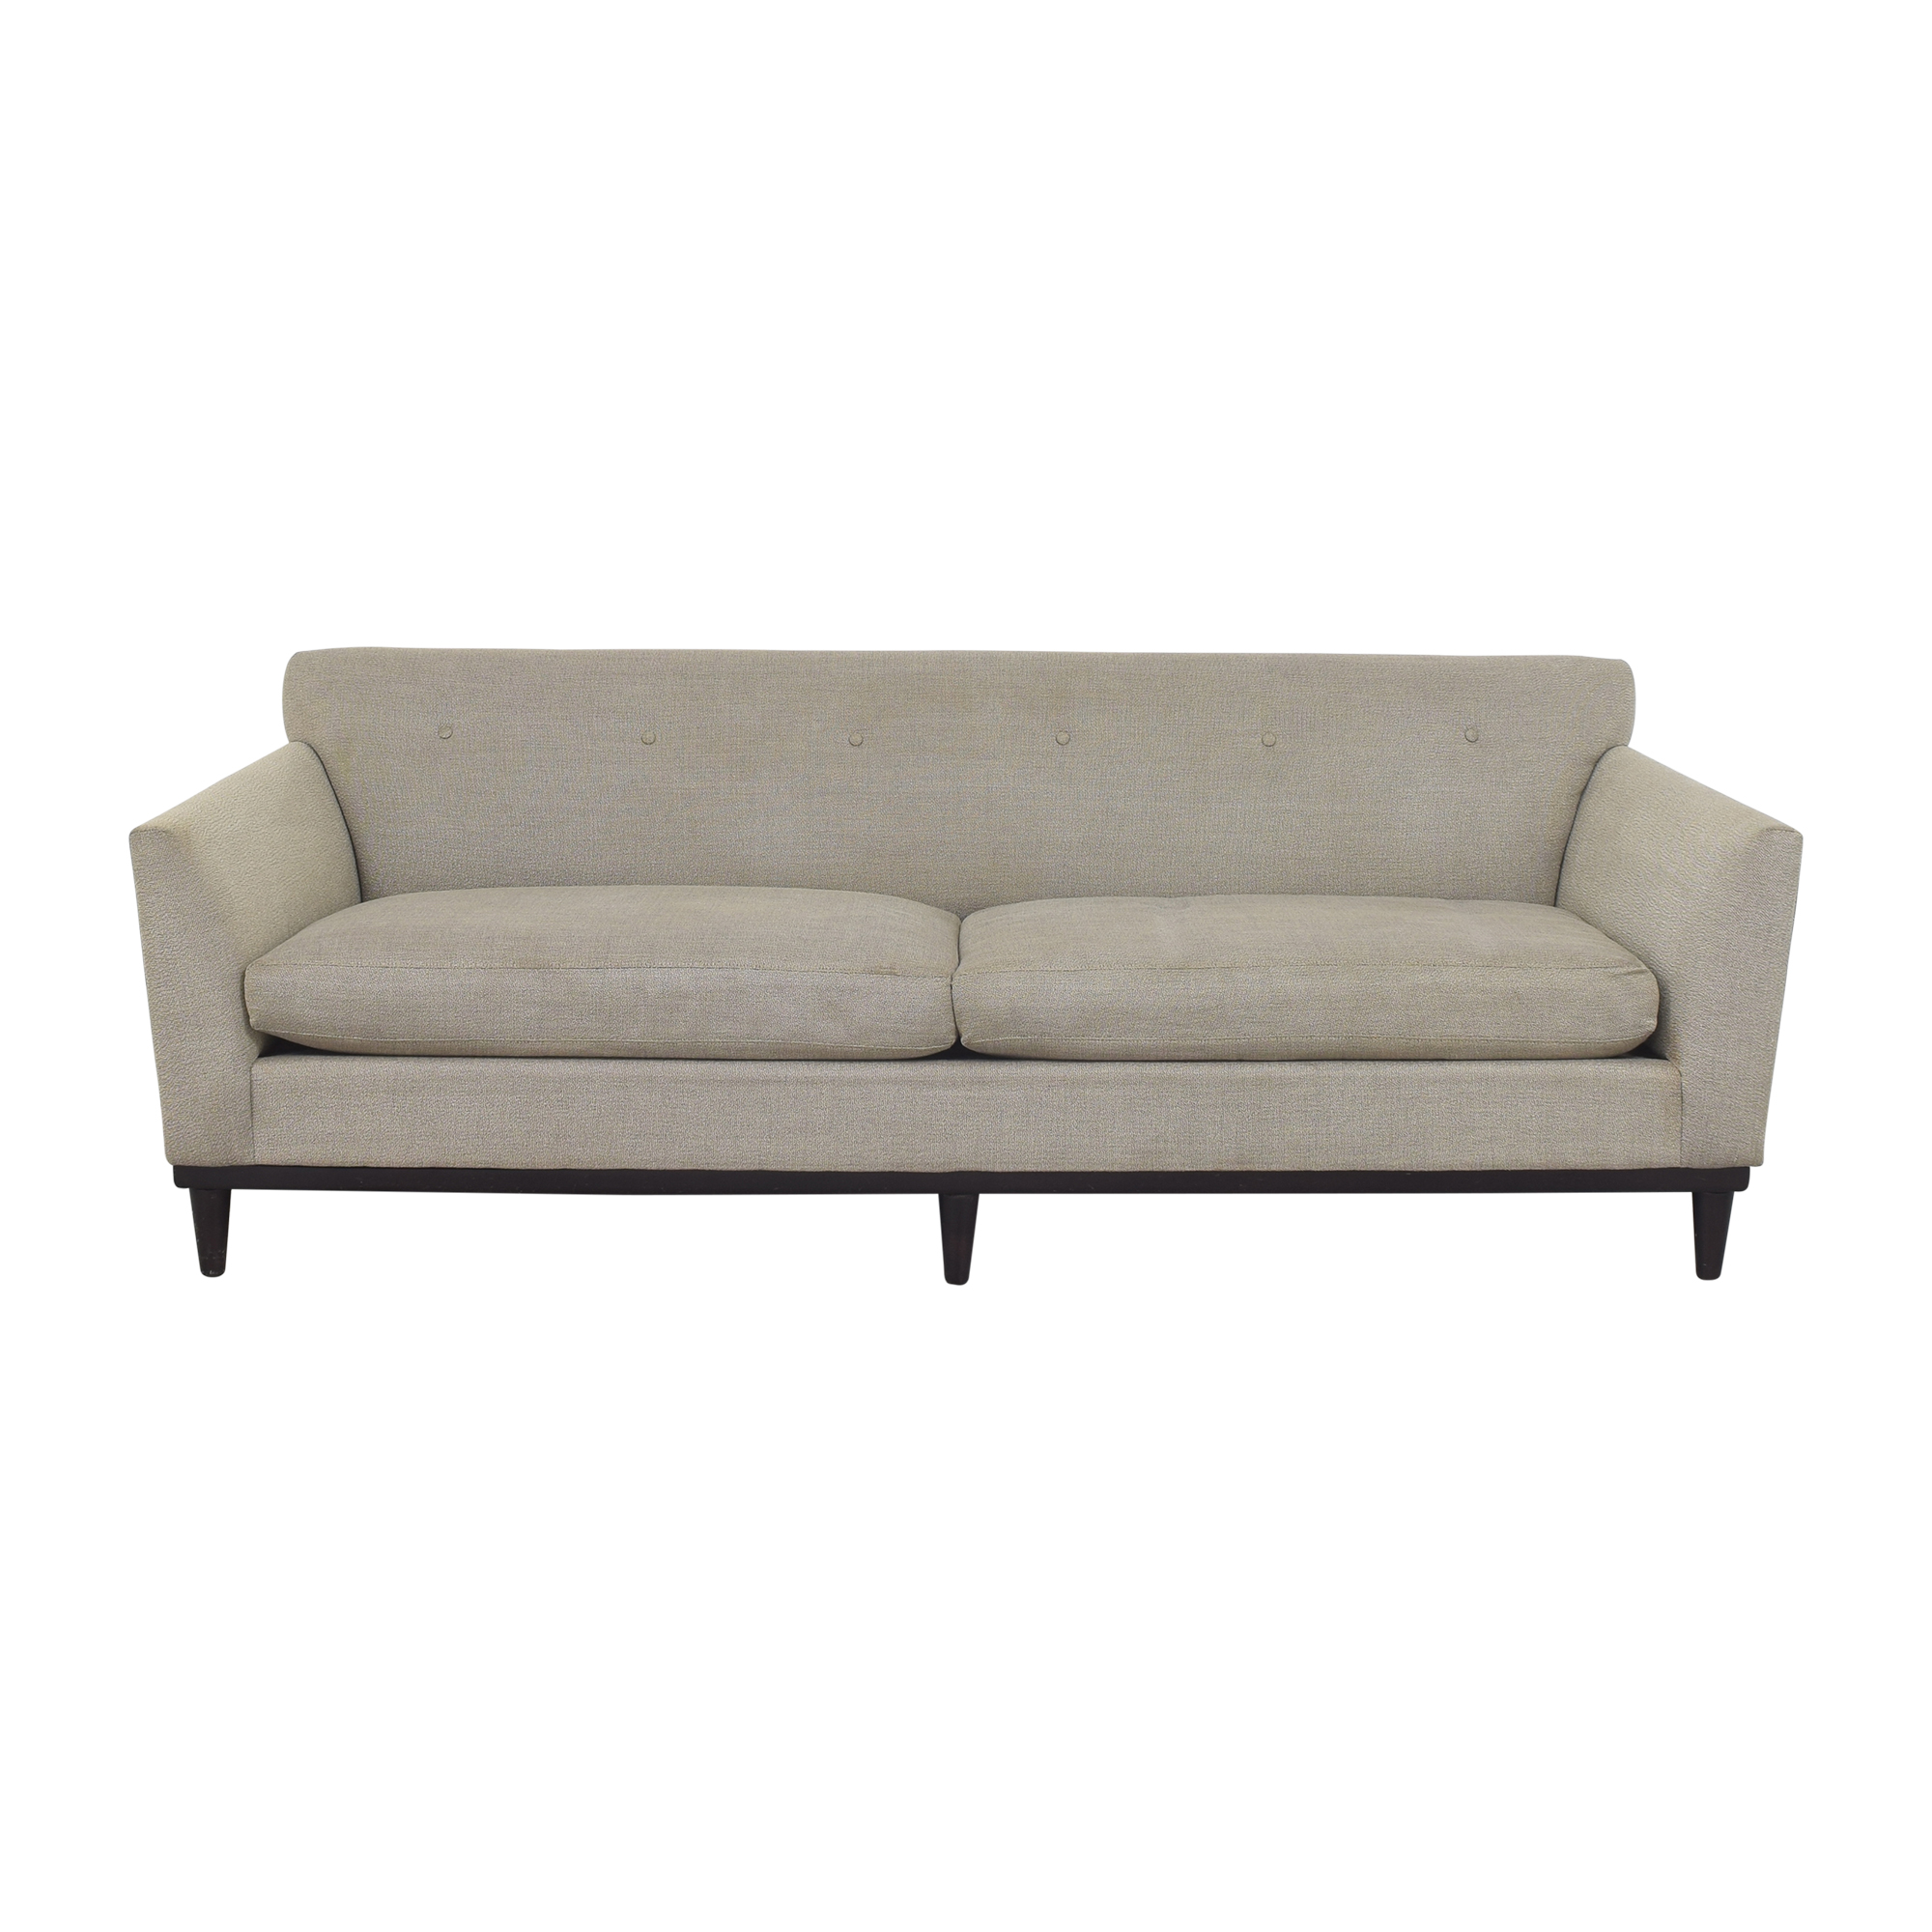 Room & Board Room & Board Eugene Sofa ct